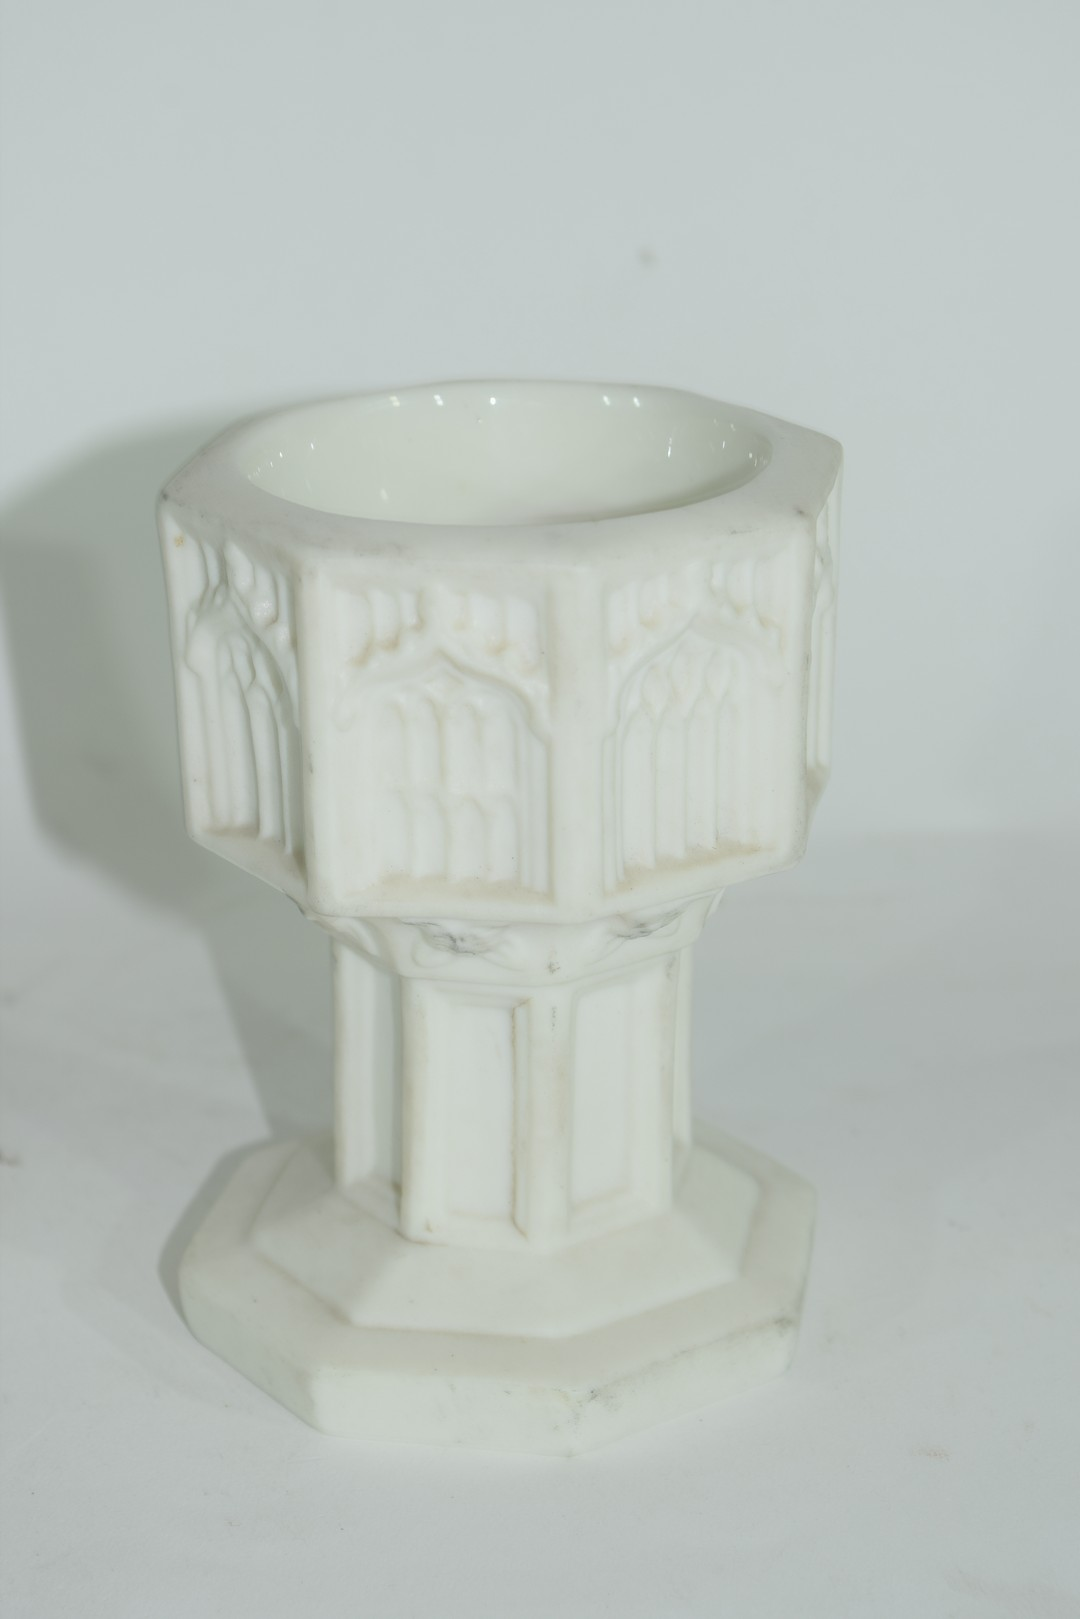 19th century Minton Parian ware model of a font - Image 3 of 7